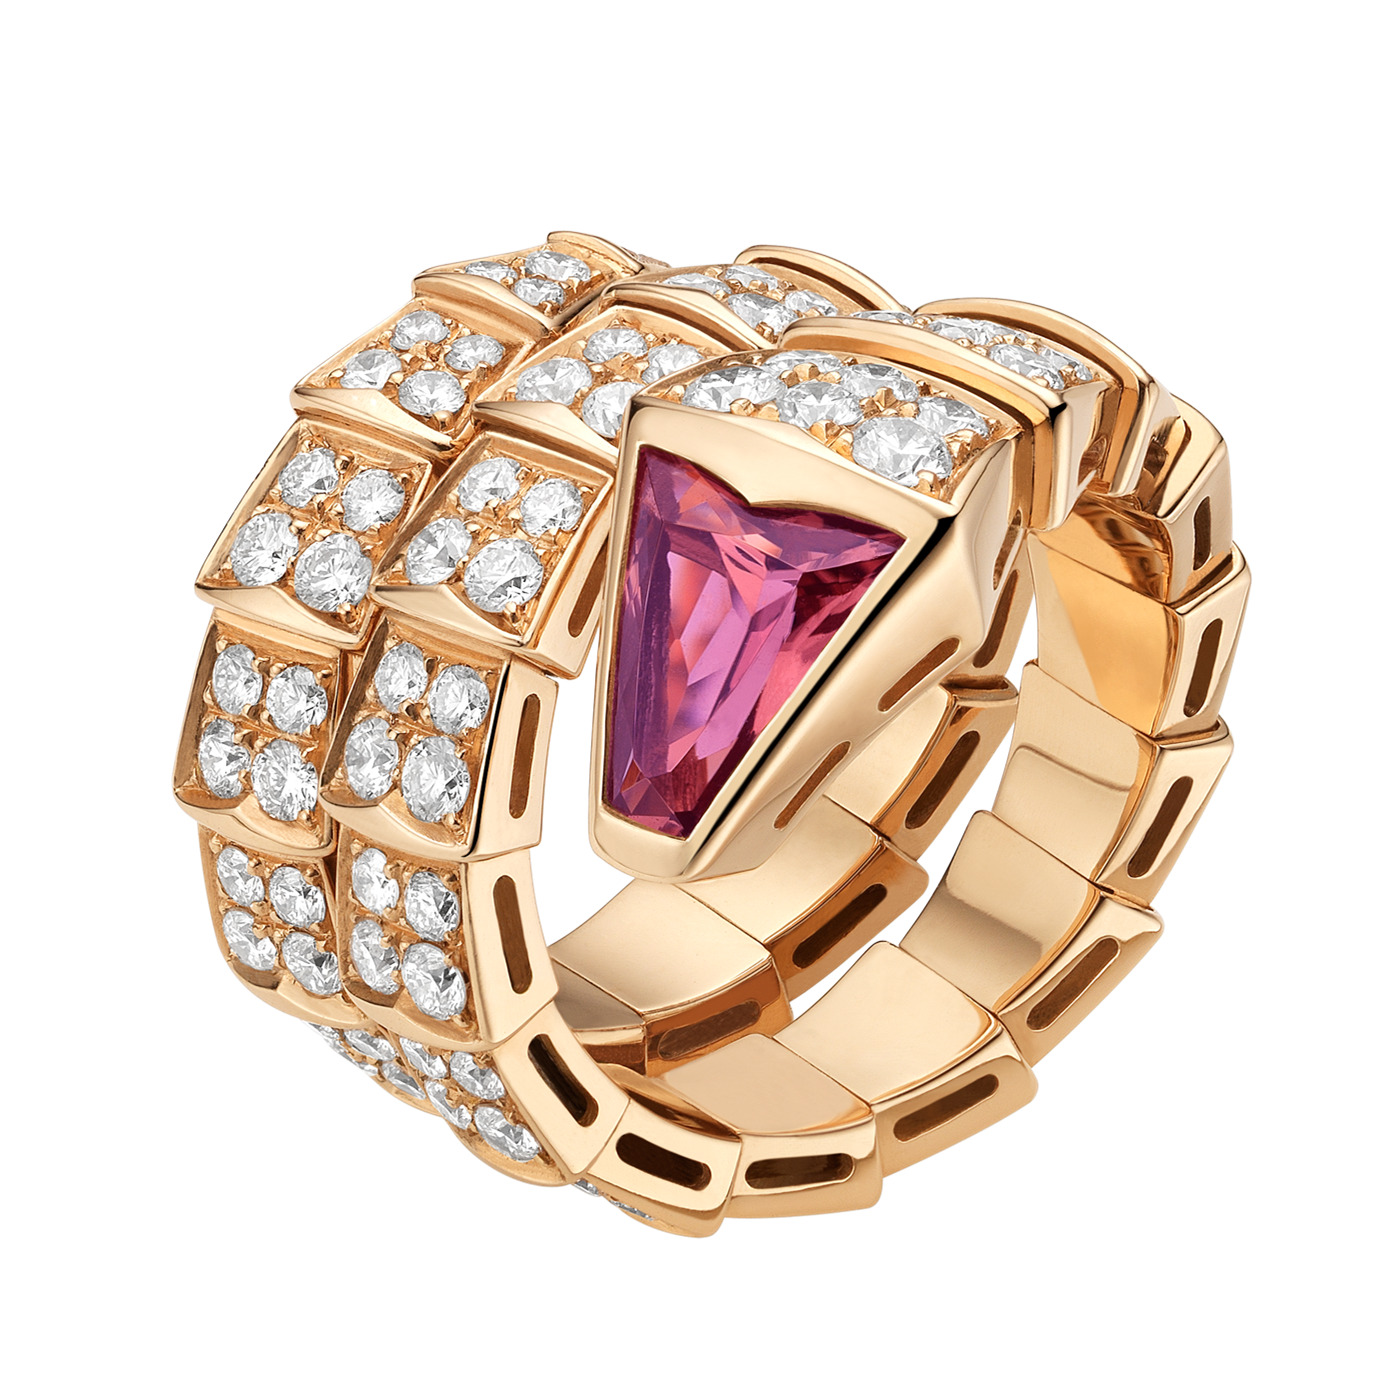 Bvlgari Serpenti replique bague Or rose Double spirale Tourmaline rouge